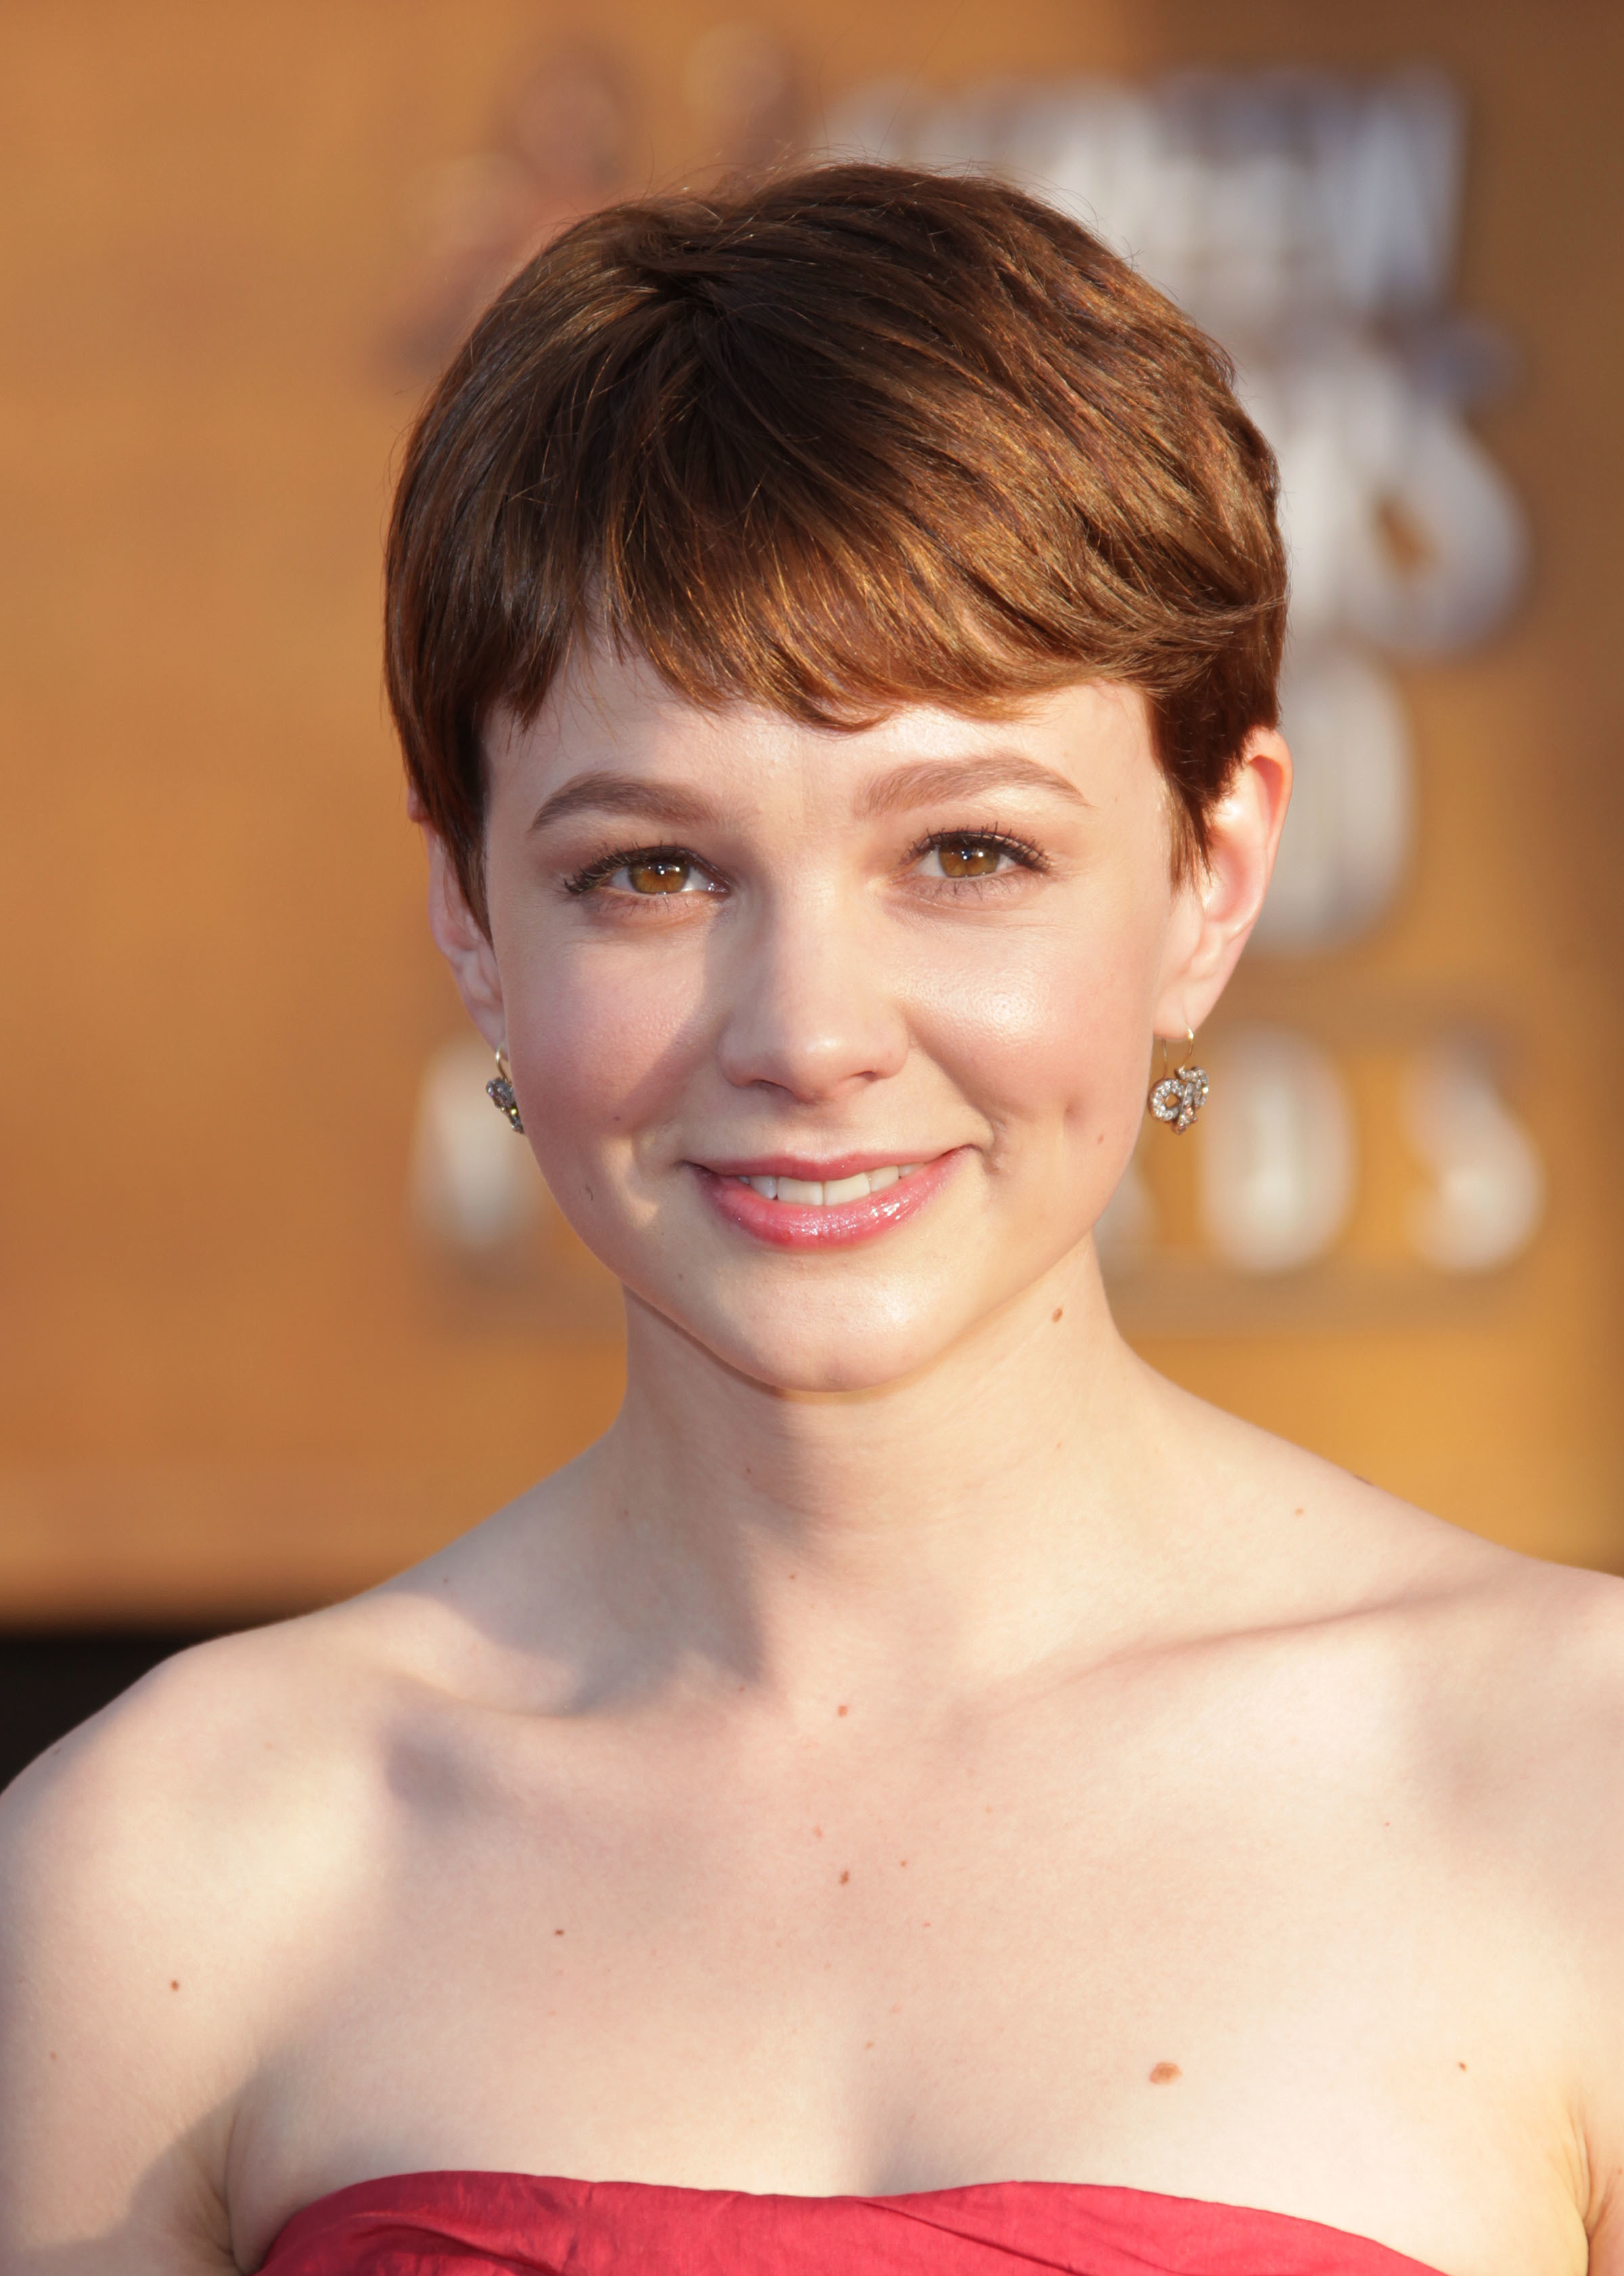 carey mulligan HD Wallpaper